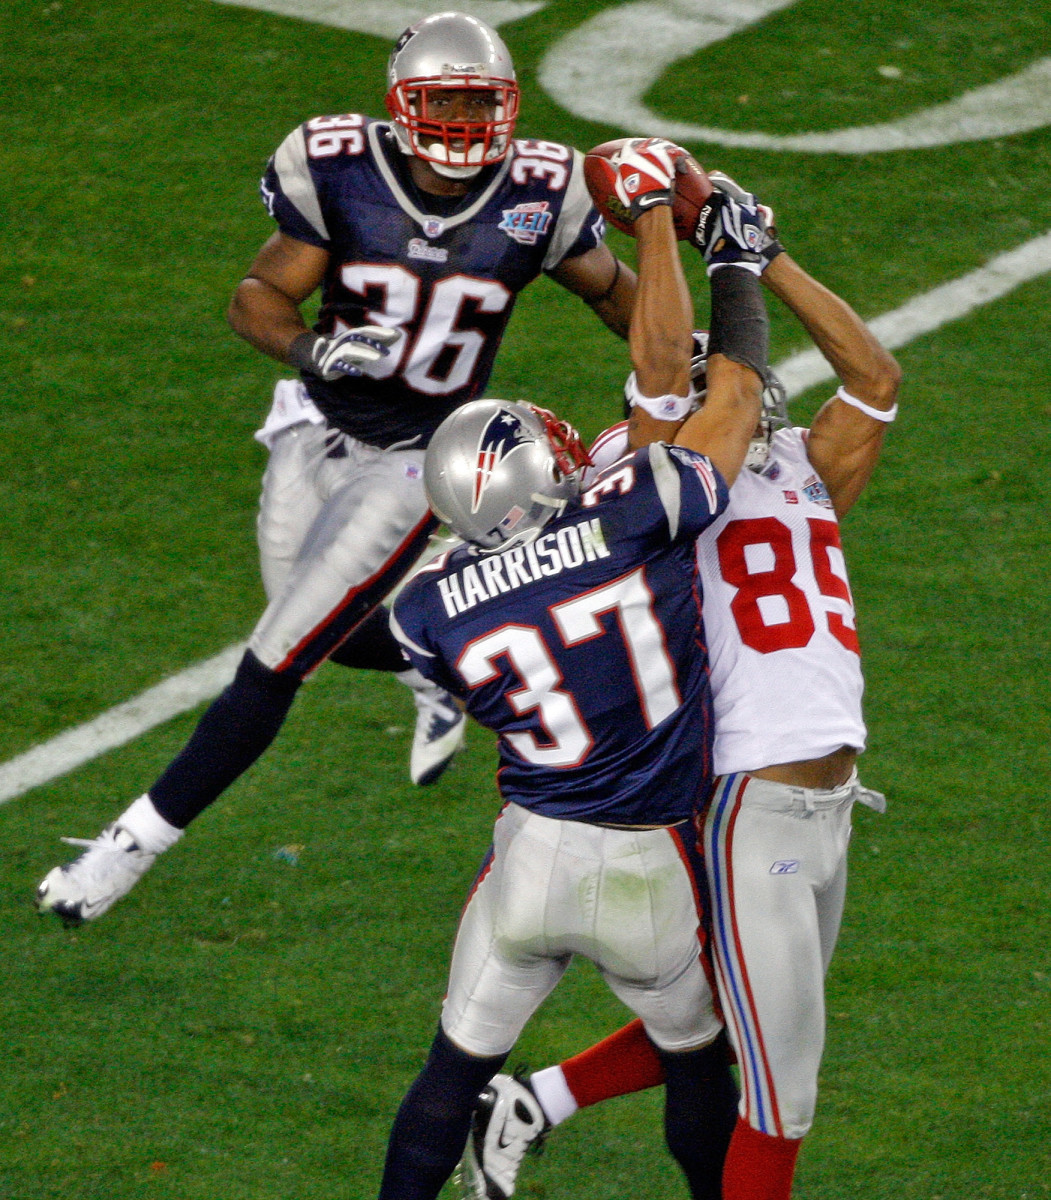 David Tyree catches the football with his helmet in one of the most clutch plays in Super Bowl history.